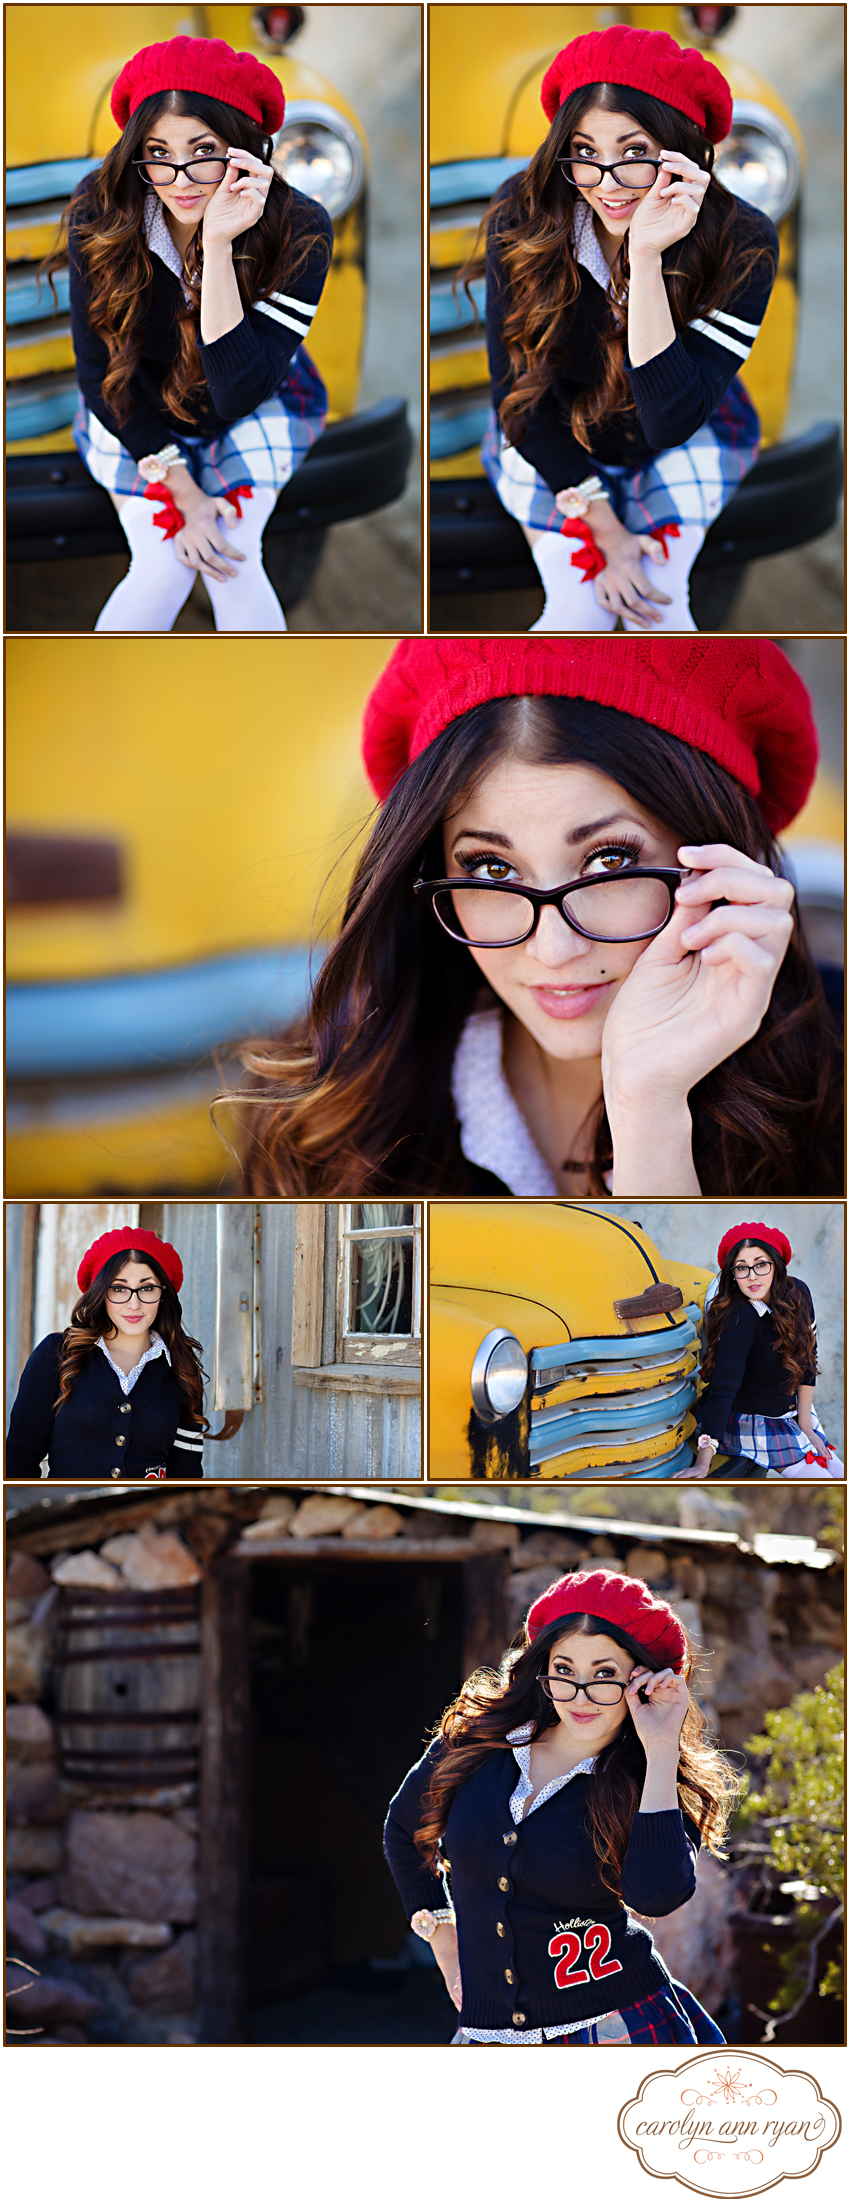 Fanwood NJ Senior Portrait Photographer Carolyn Ann Ryan photographs styled session with a school girl classic look